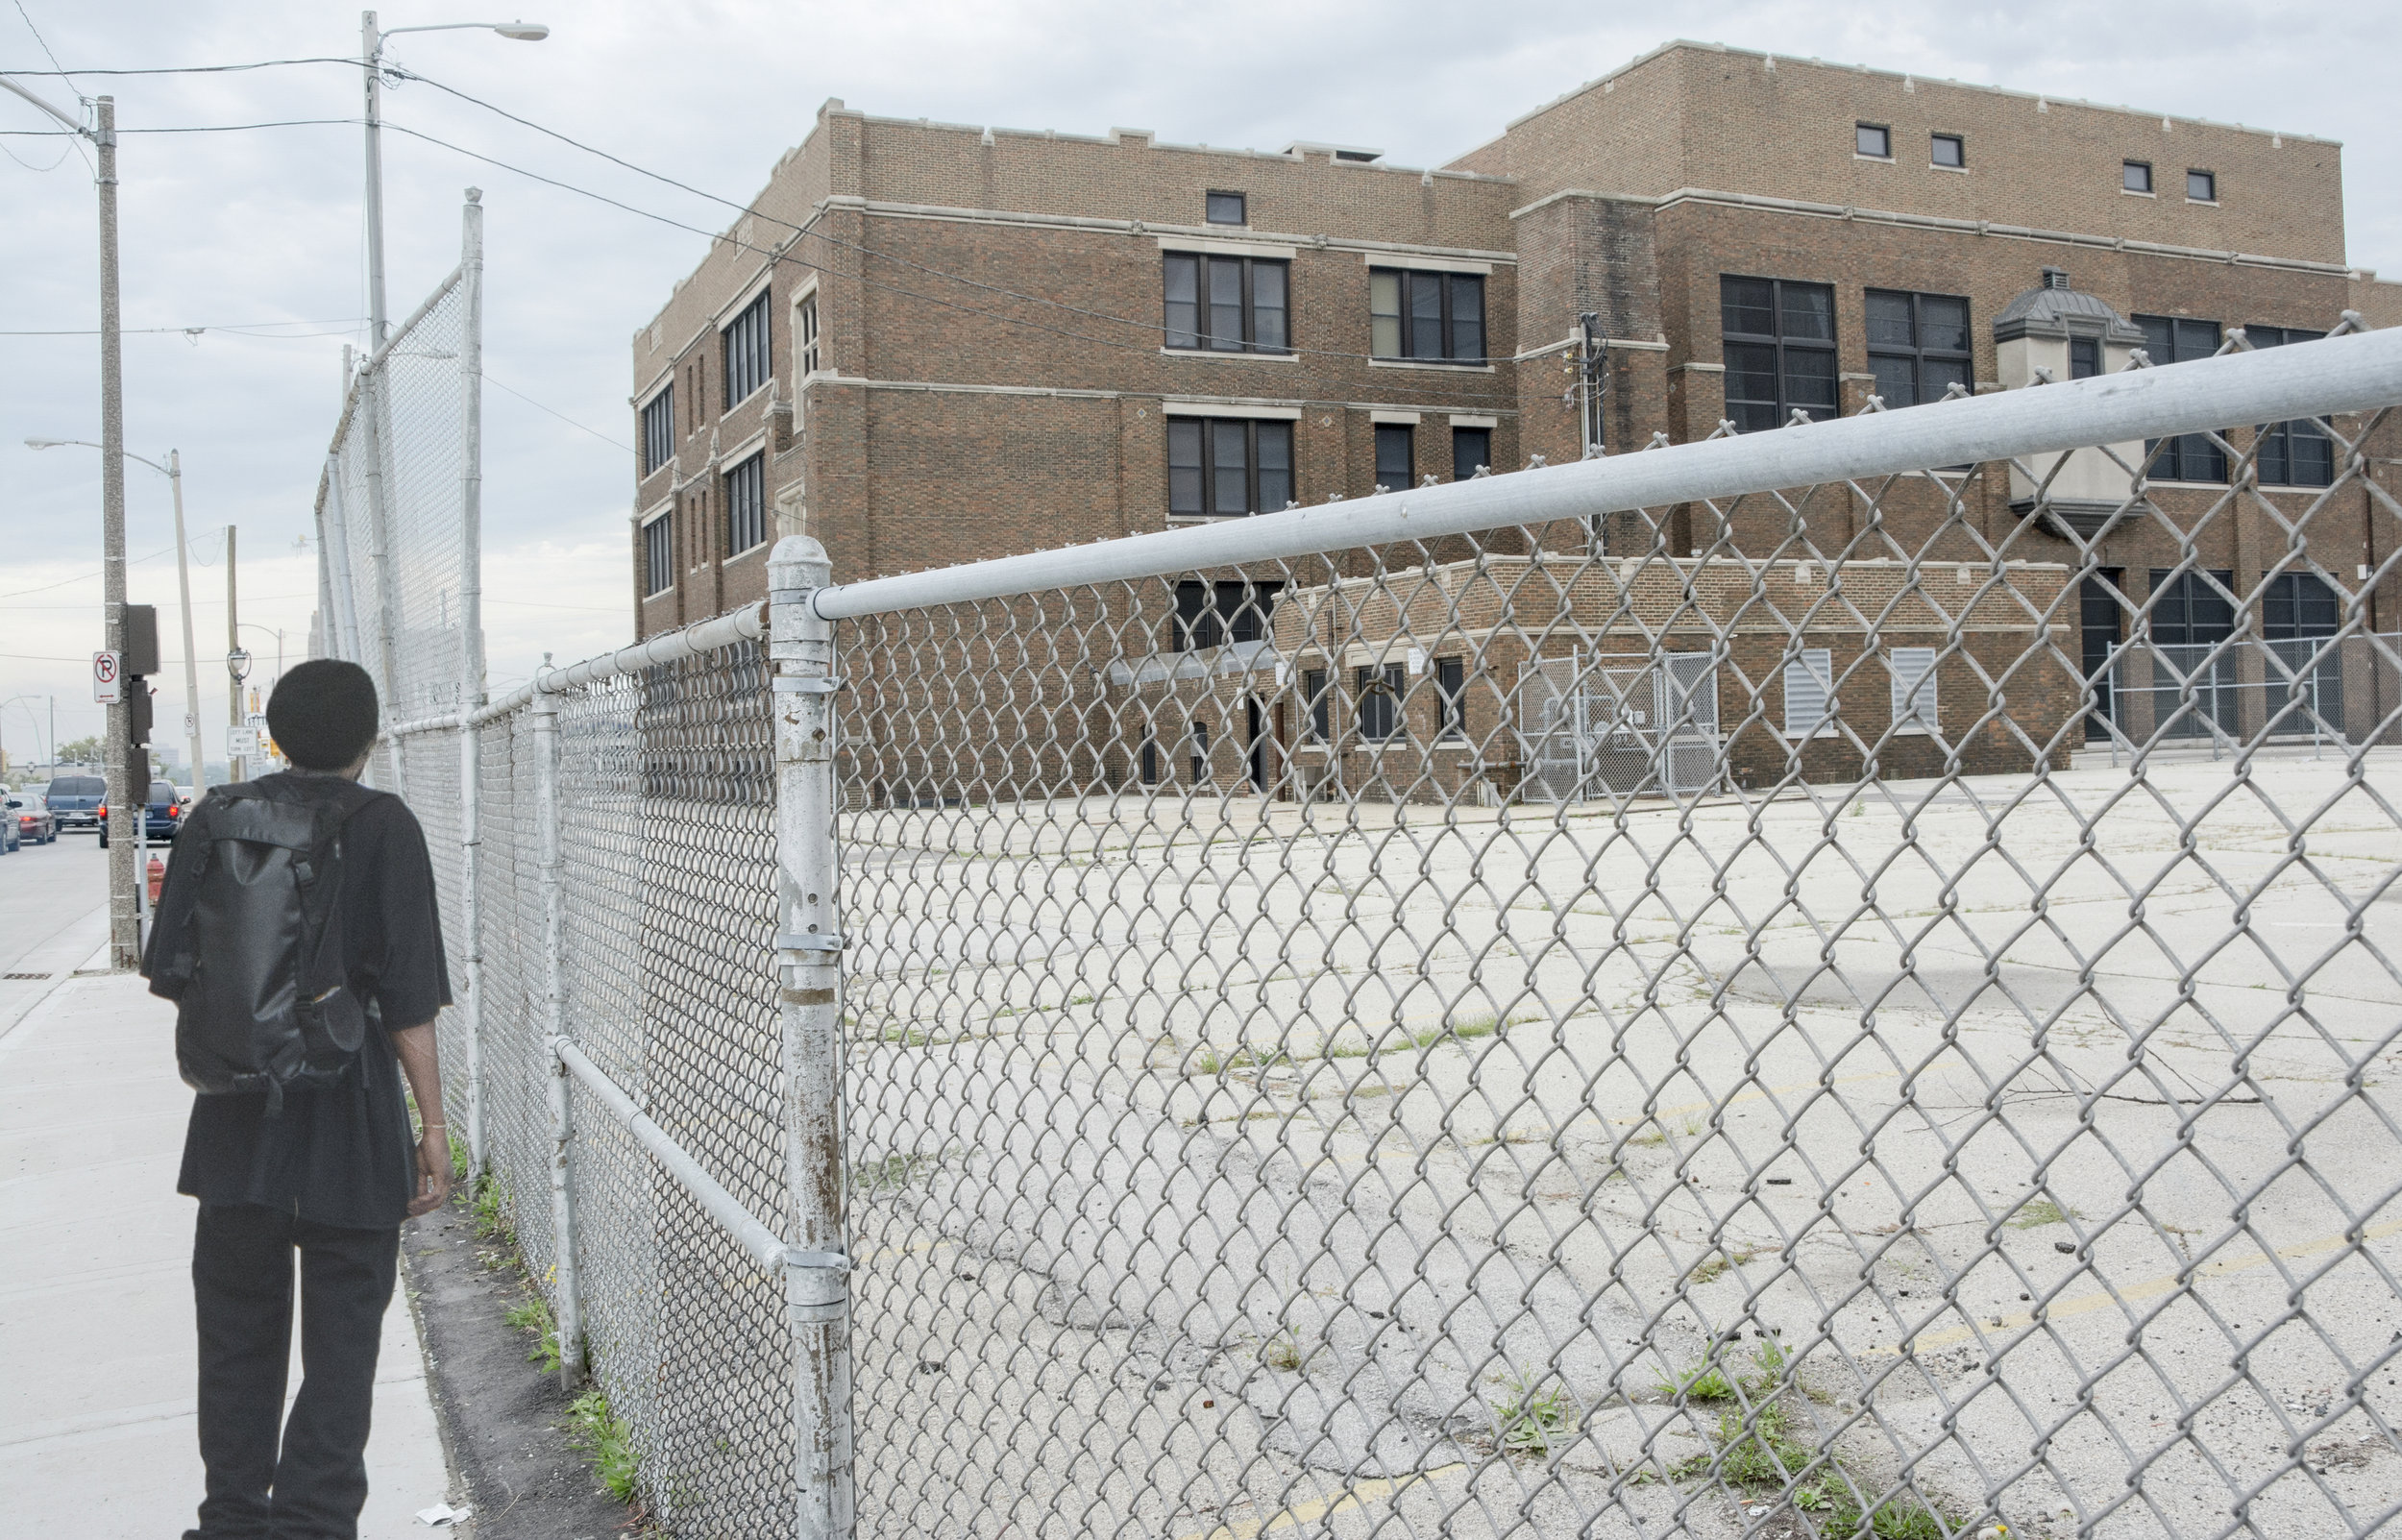 As of 2016, there were 13 closed public schools in Milwaukee, several located in the inner city, this one at 27th and Wisconsin. Around the corner were several multi-story public apartment buildings also closed.